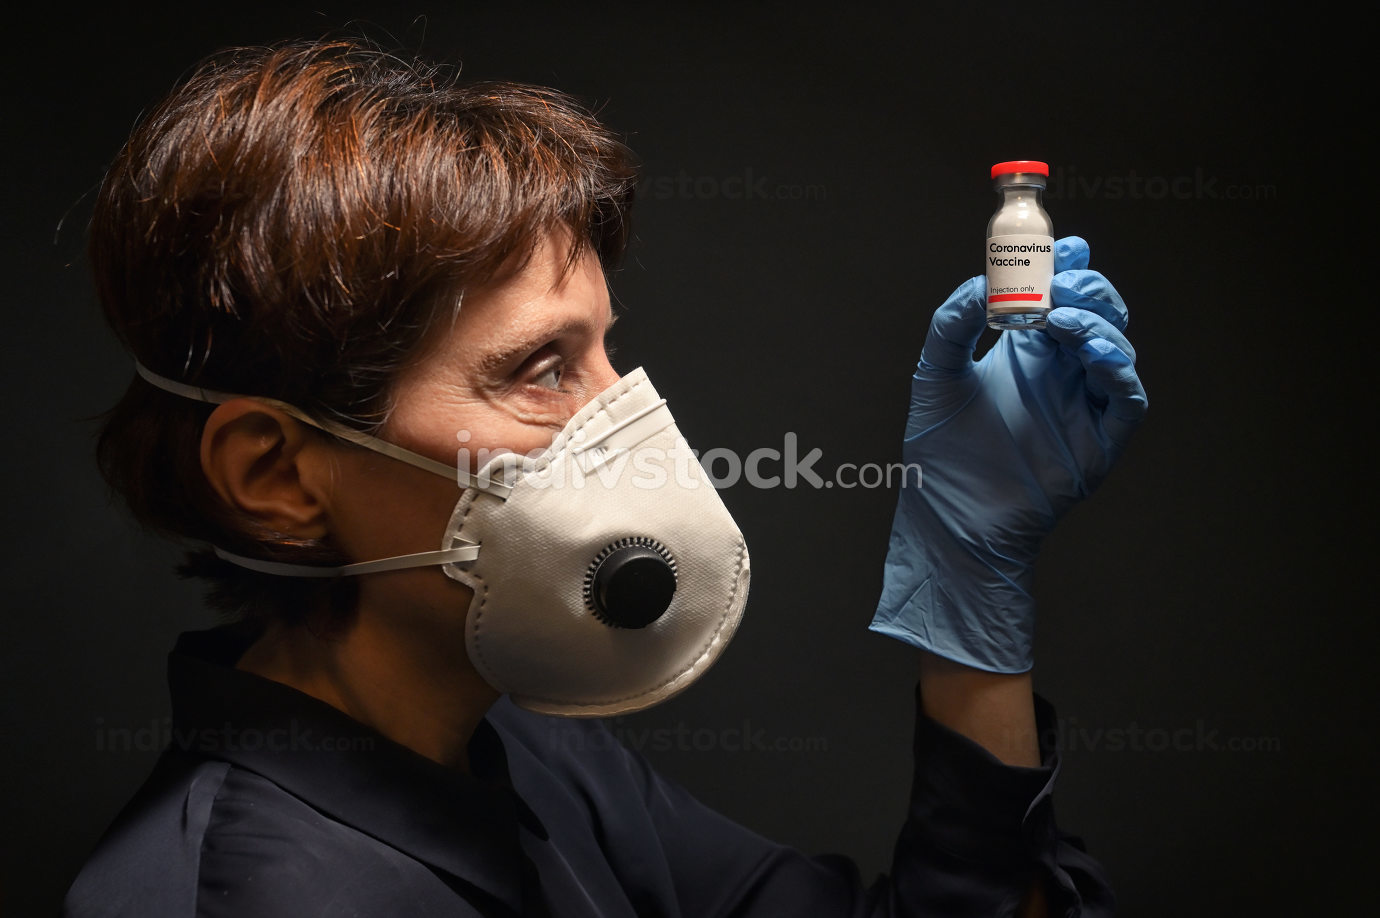 Woman Wearing Medical Protective Mask and Vaccine